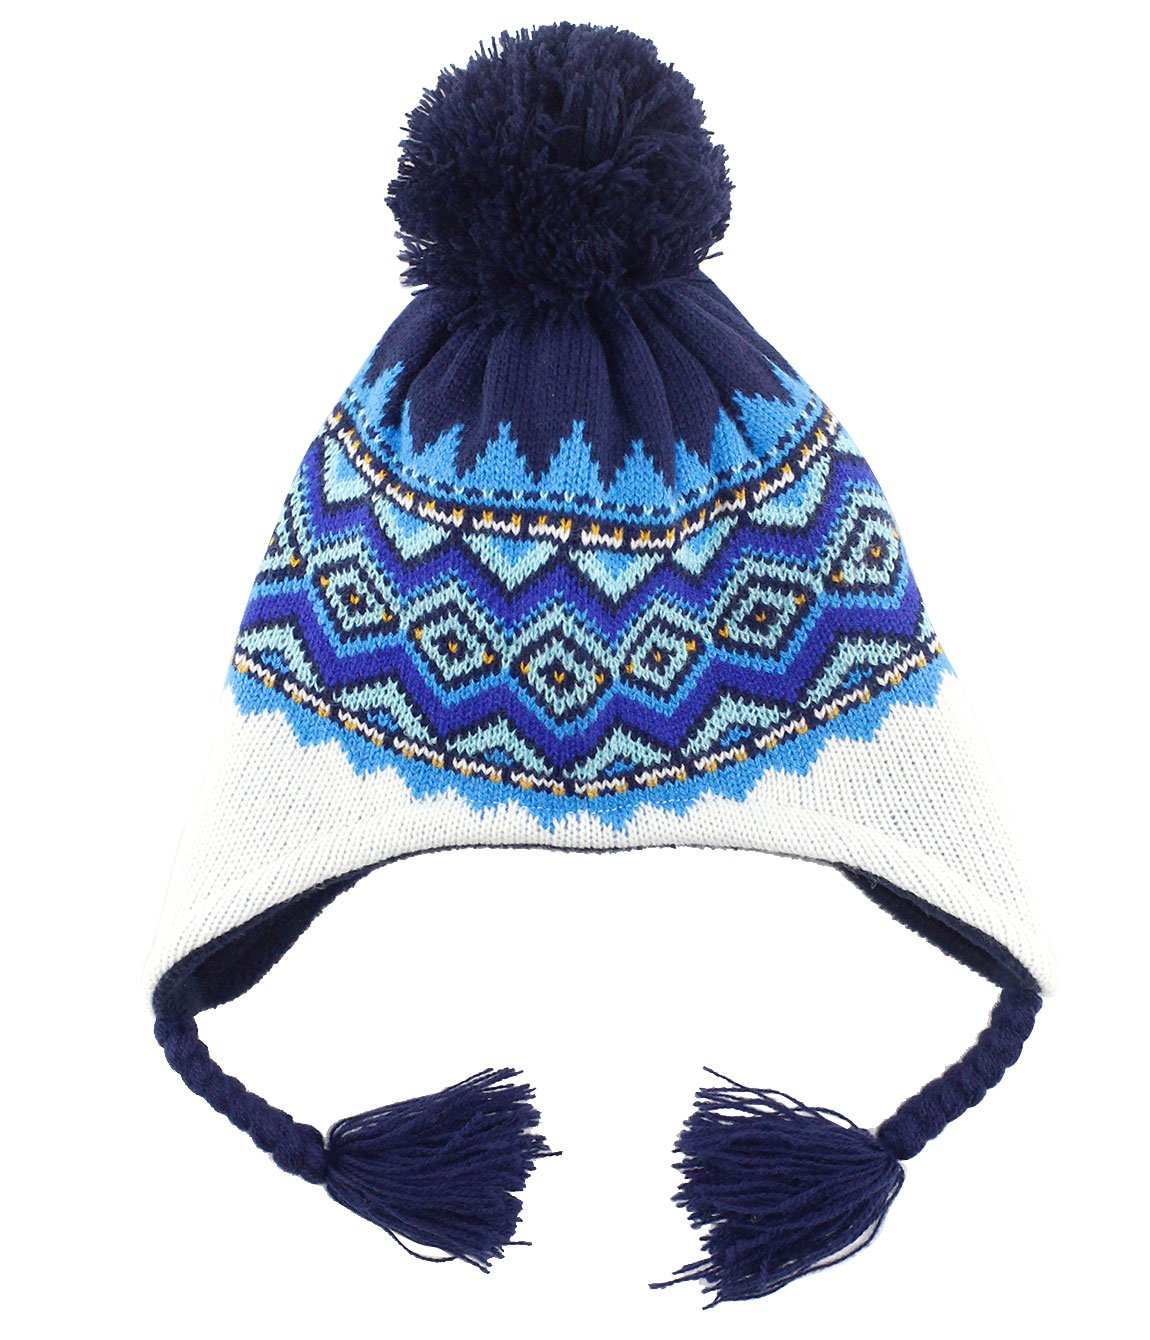 Fashinable Baby Kids Warm Earflap Hood Hat for Child Boys Winter Ski Toddler Knit Beanie Hat Cap for Christmas 2-3 T